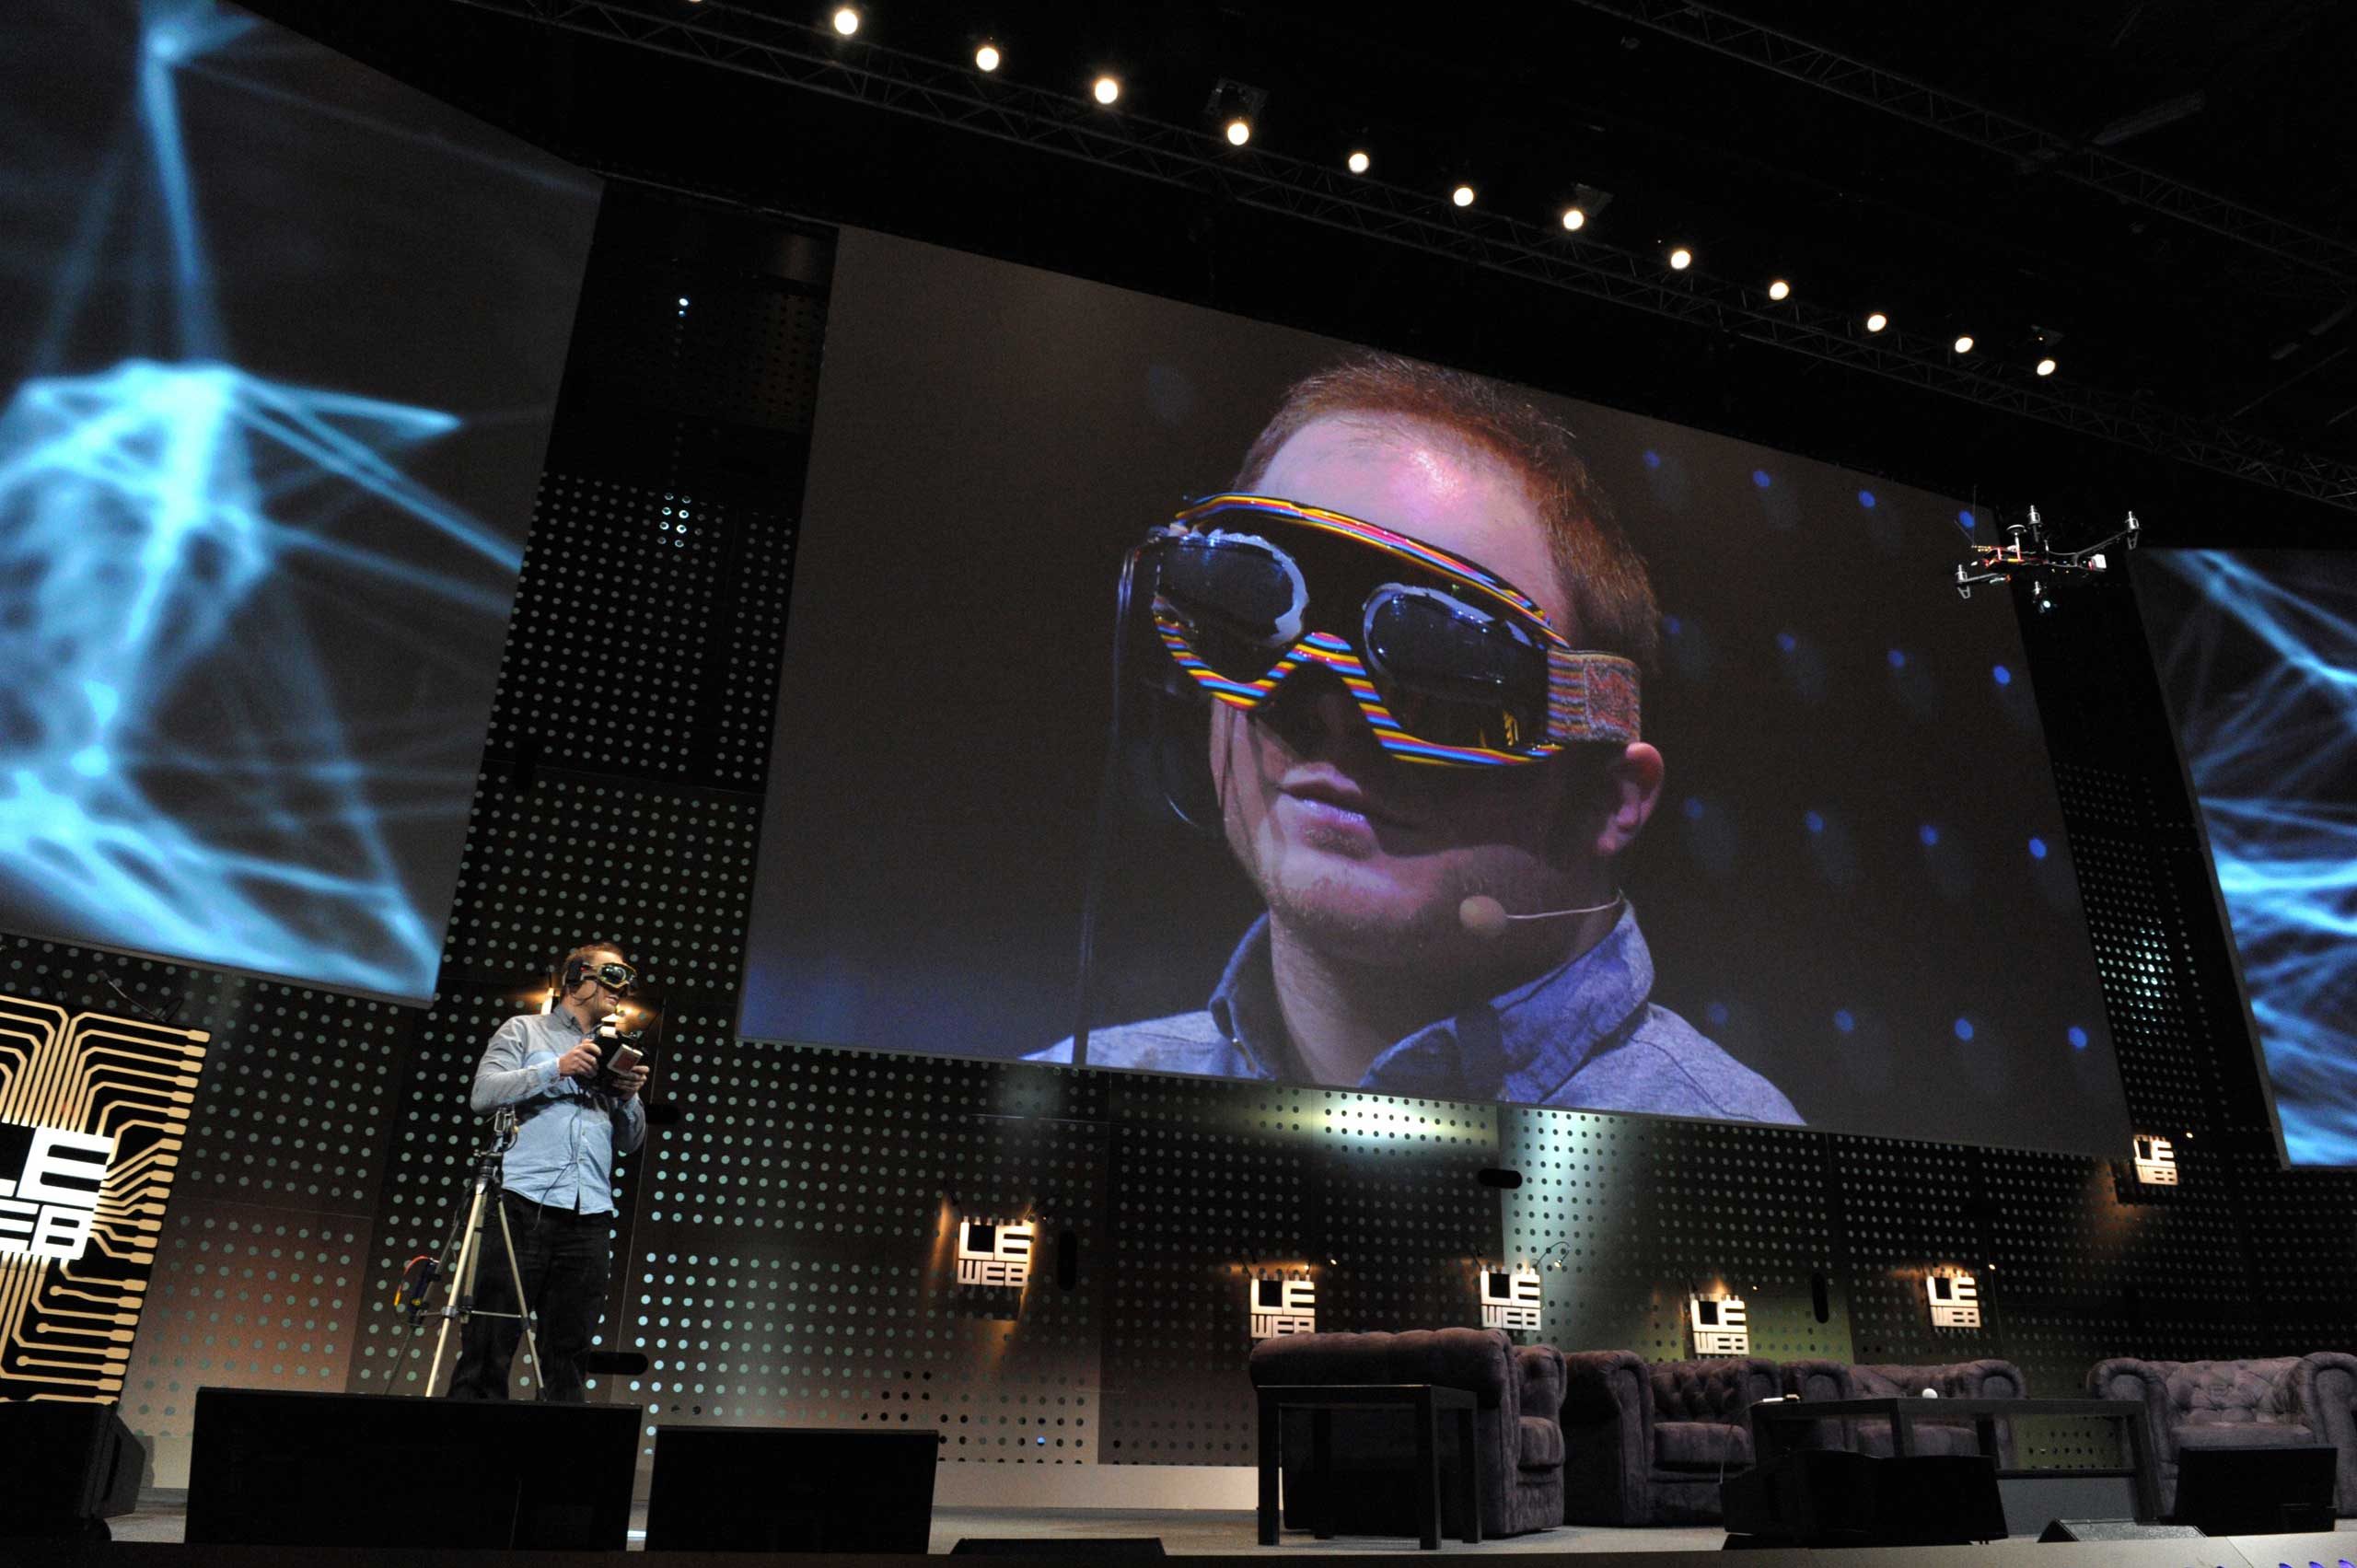 <strong>2012</strong>                                                                      Raphael Pirker from Switzerland, founder of Team BlackSheep used virtual reality goggles to simulate the sensation of flight in the real world during a demonstration, flying from the perspective of a model aircraft, during a session of LeWeb'12 in Saint-Denis, near Paris.